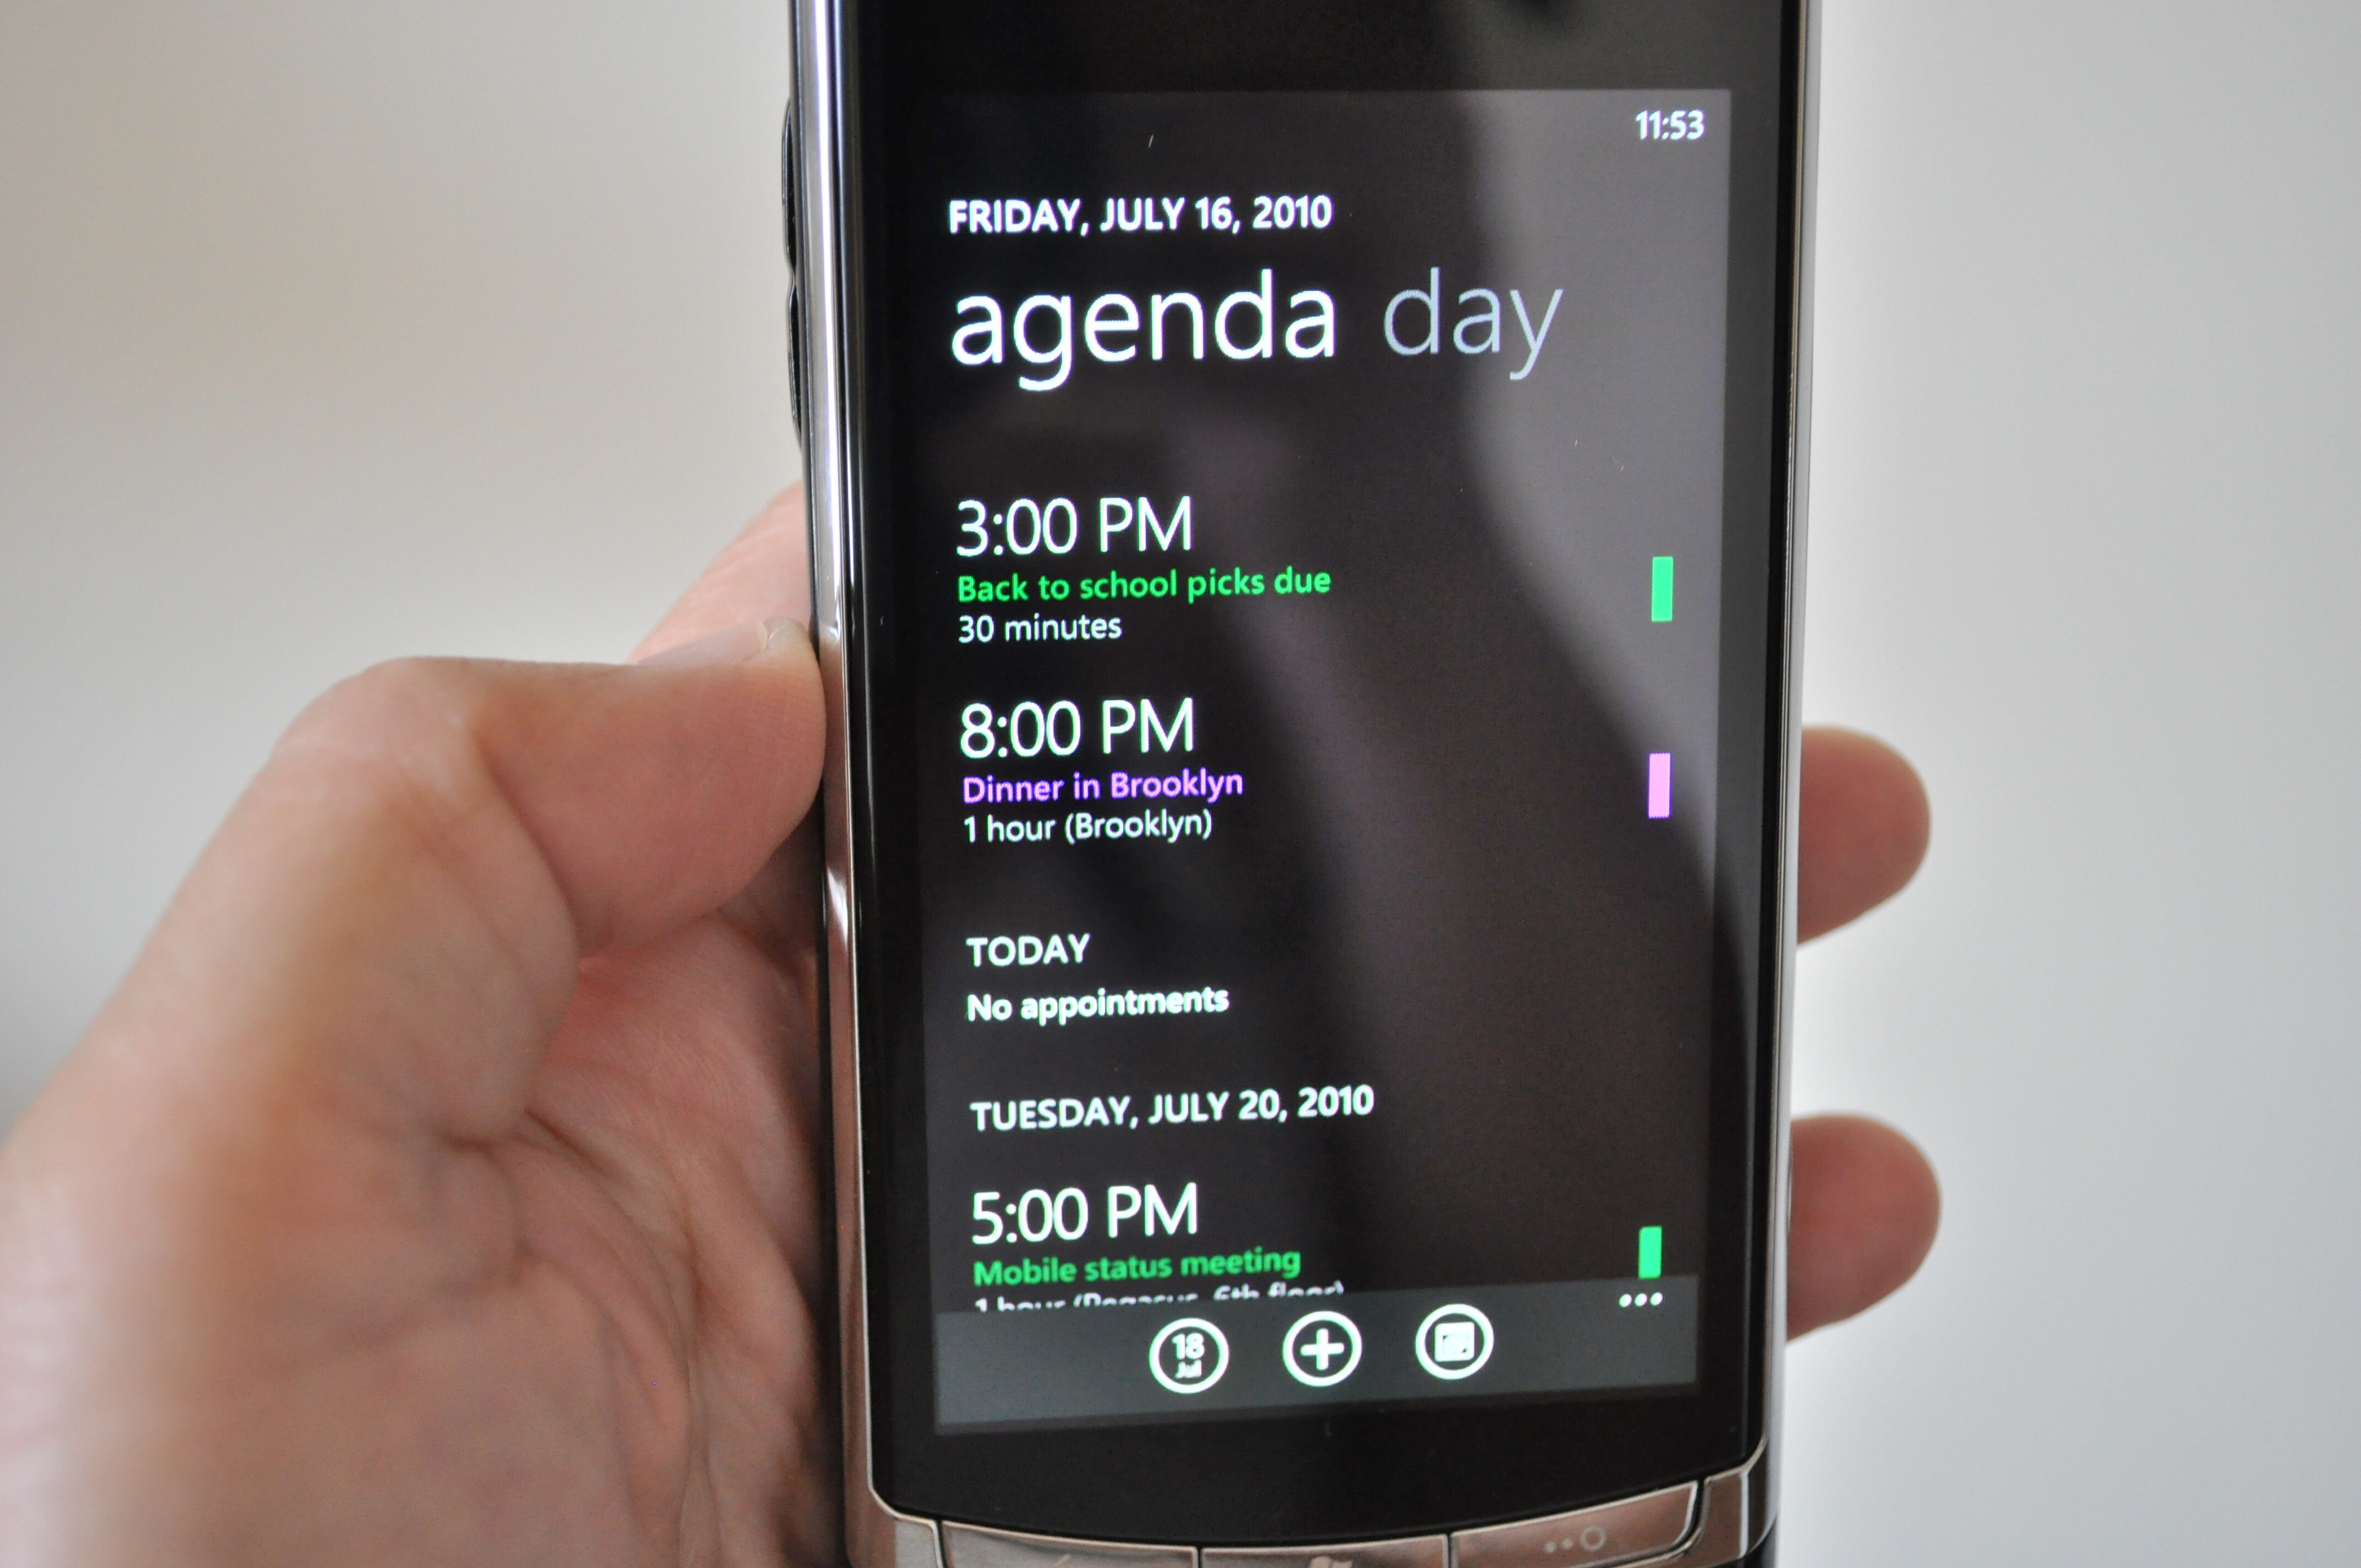 Windows Phone 7 offers combined calendars with a simple yet elegant agenda view.